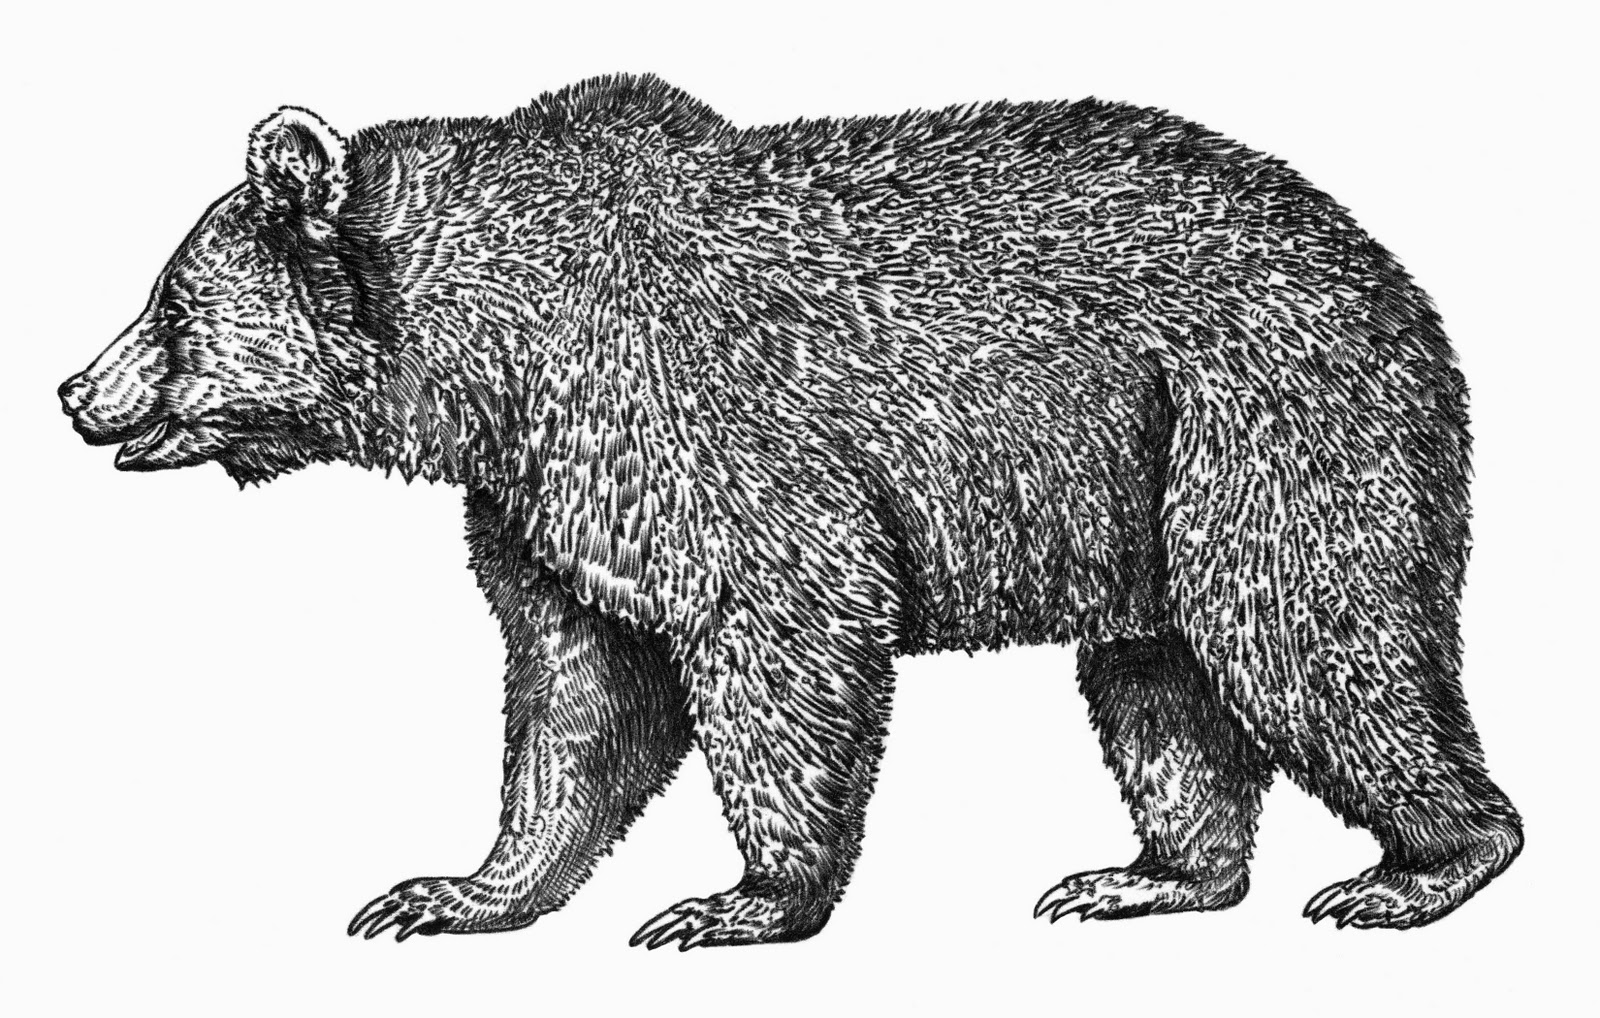 grizzly bear drawings grizzly bear pencil by sawcyy on deviantart bear drawings grizzly